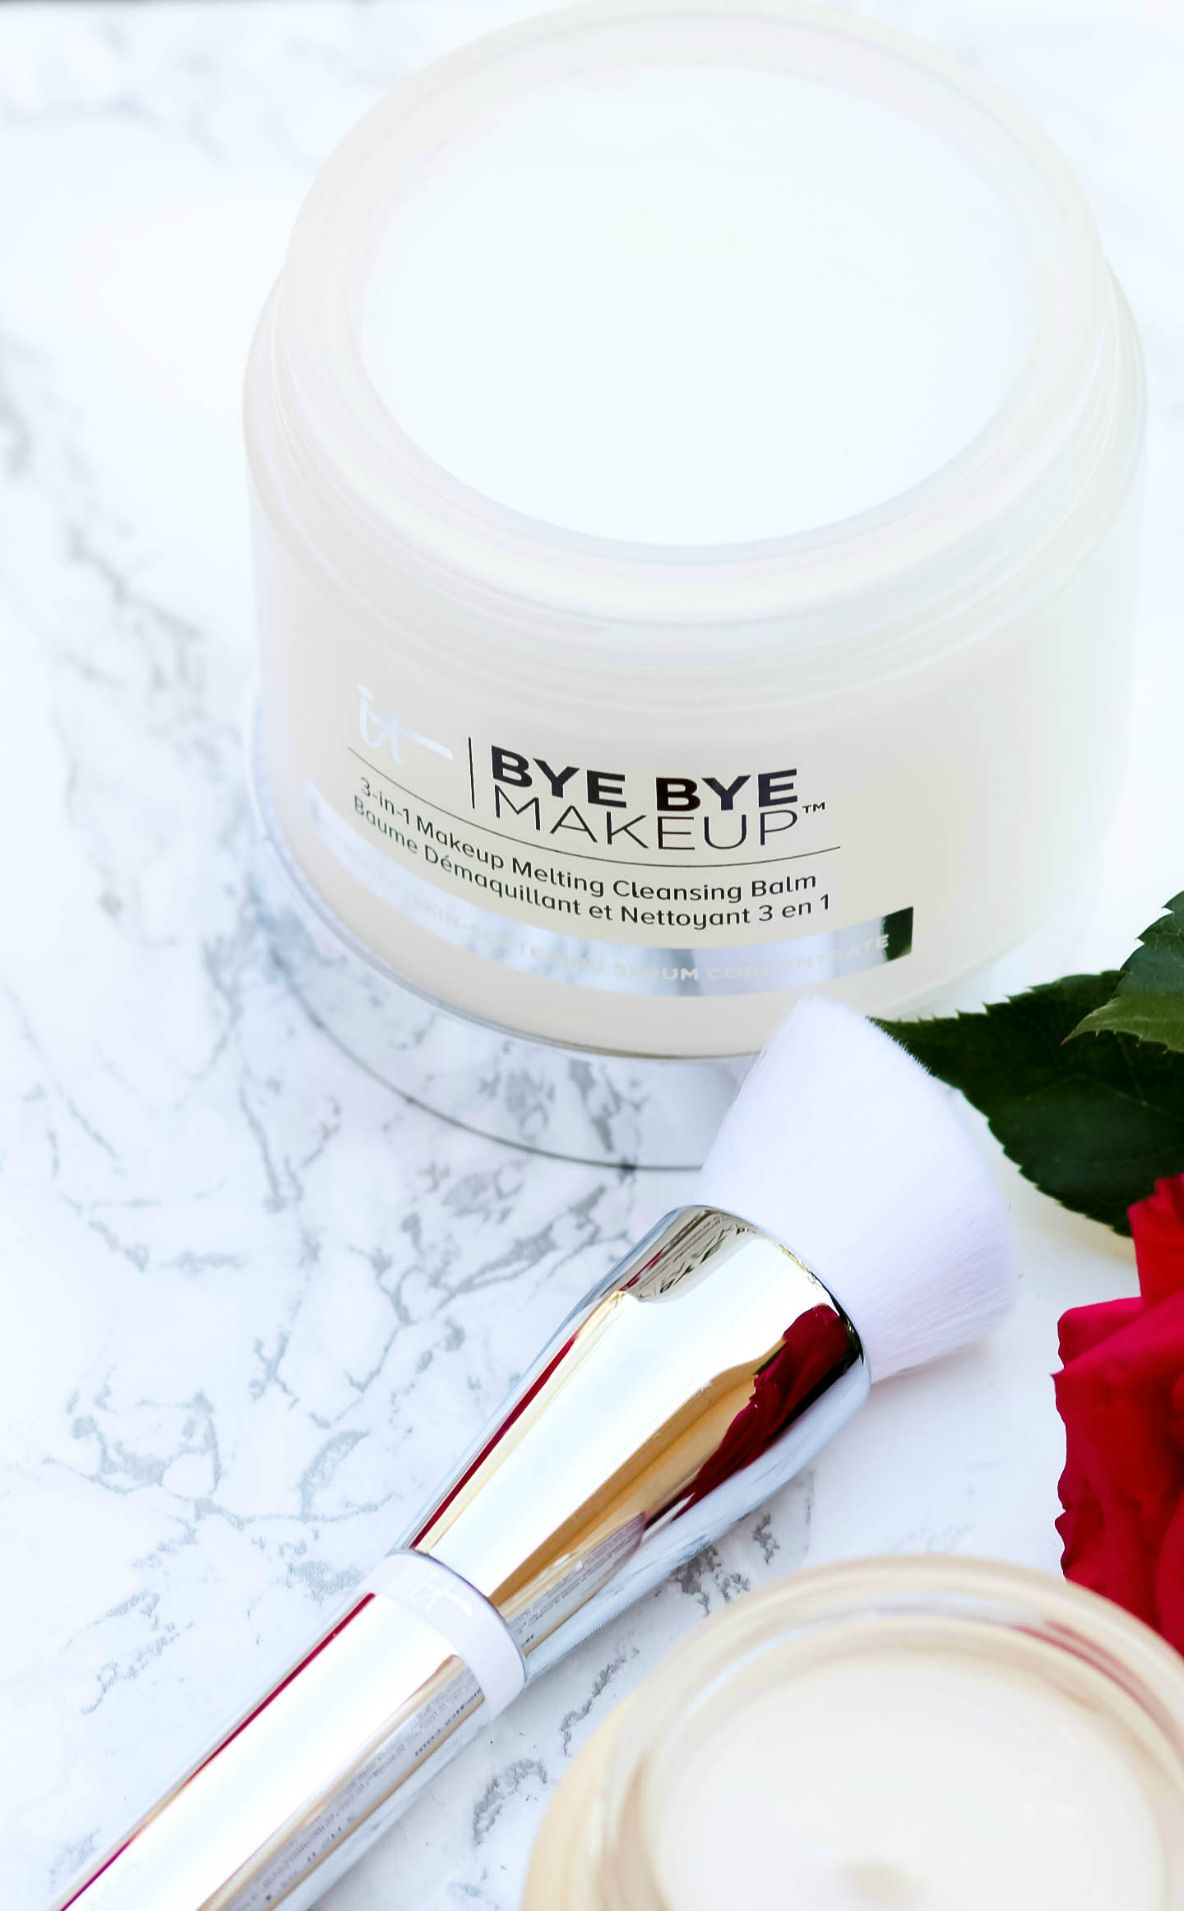 It Cosmetics Bye Bye Makeup cleansing balm is my new